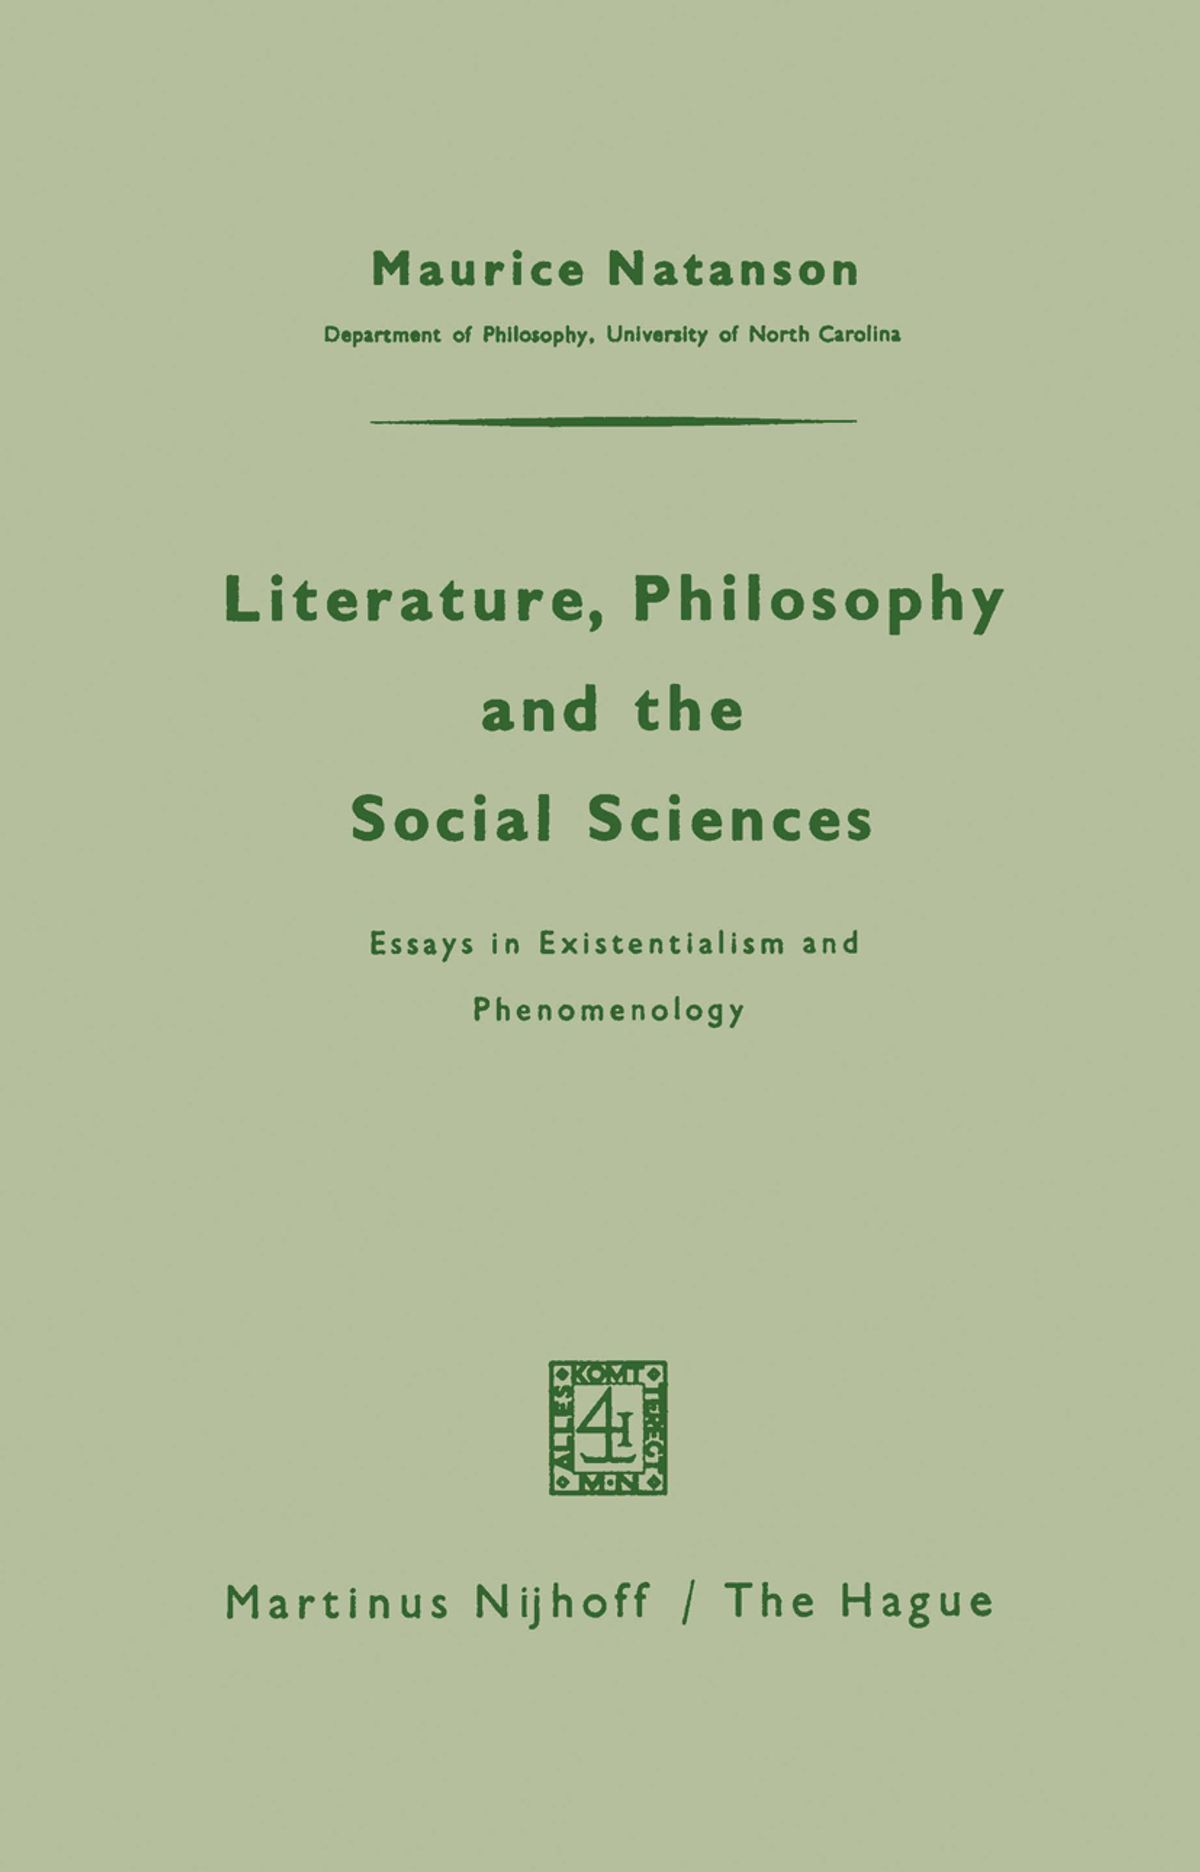 009 Literature Philosophy And The Social Sciences Essay Example Essays In Outstanding Existentialism Pdf Sartre Full